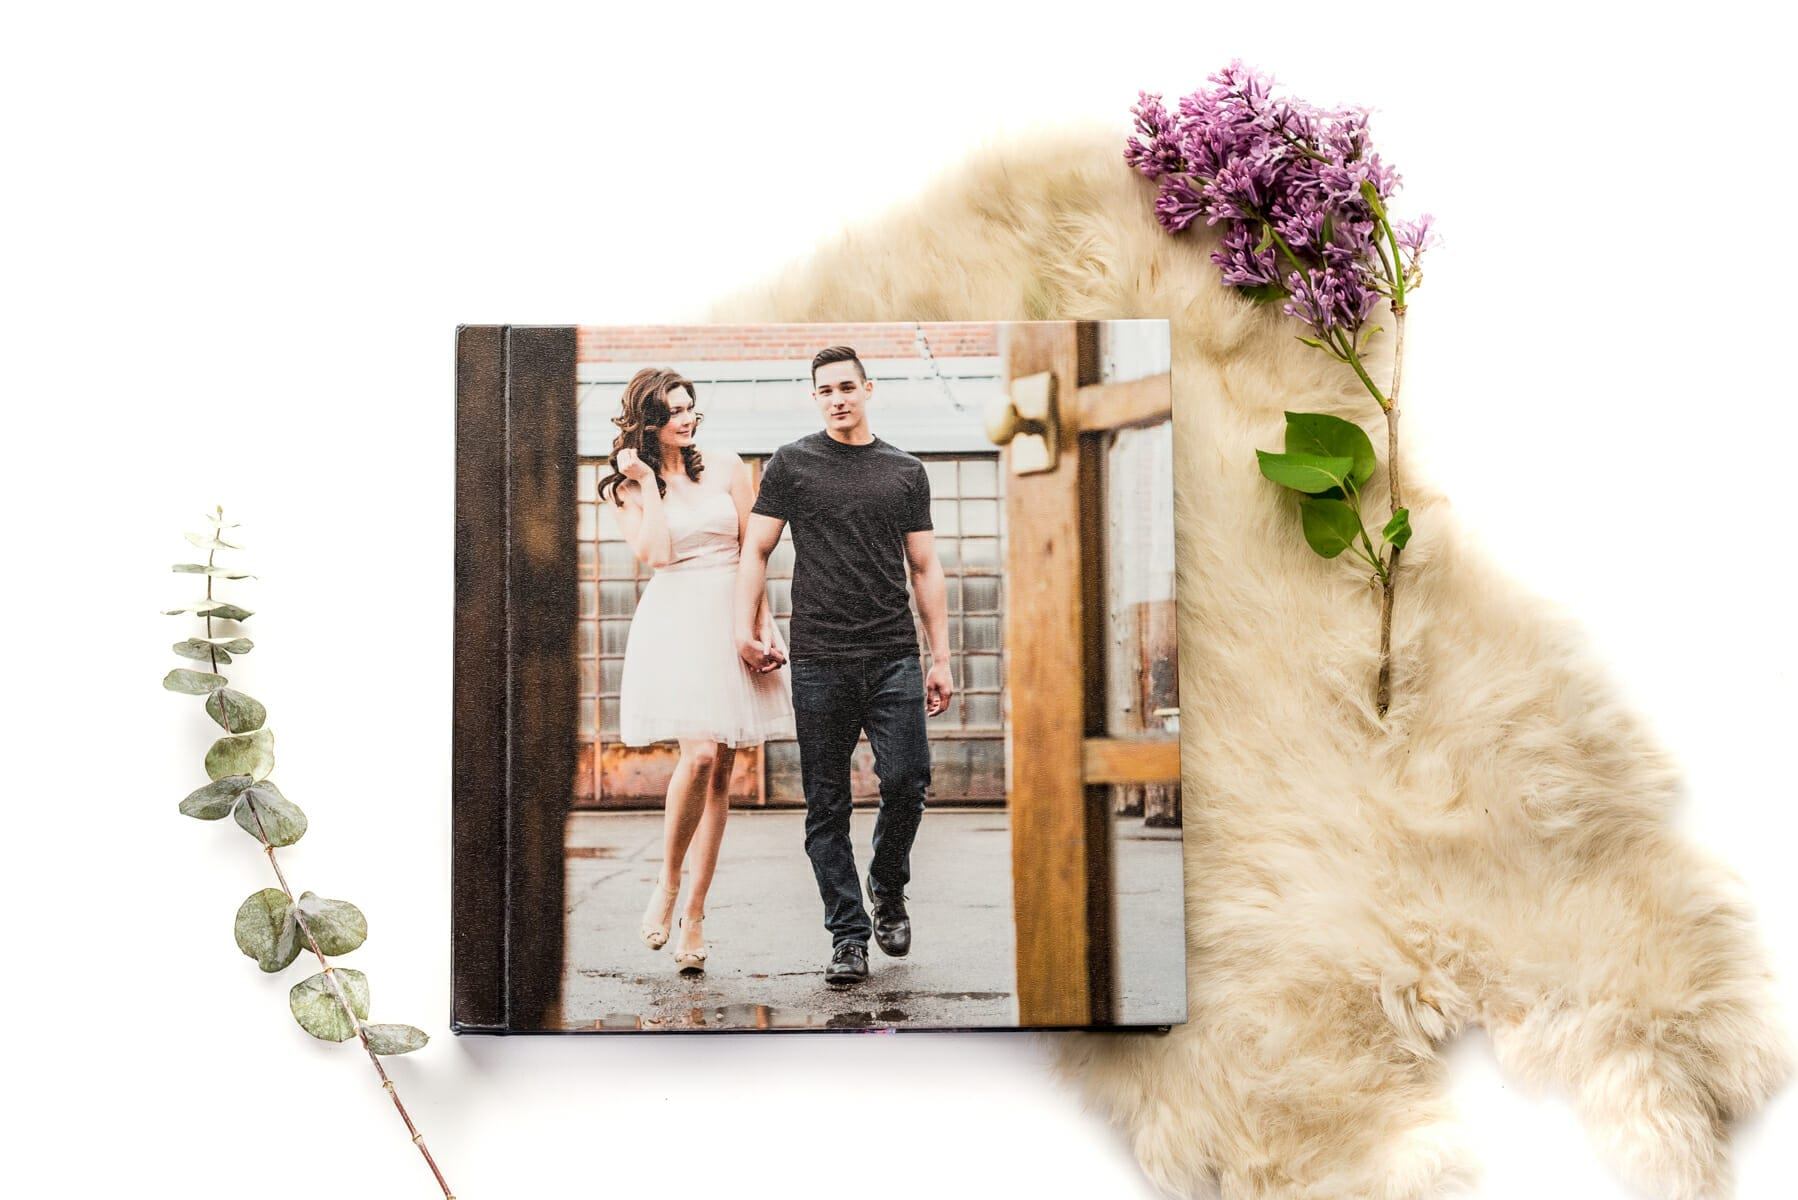 Hardcover - Custom wedding album design and printing service | From the Hip Photo